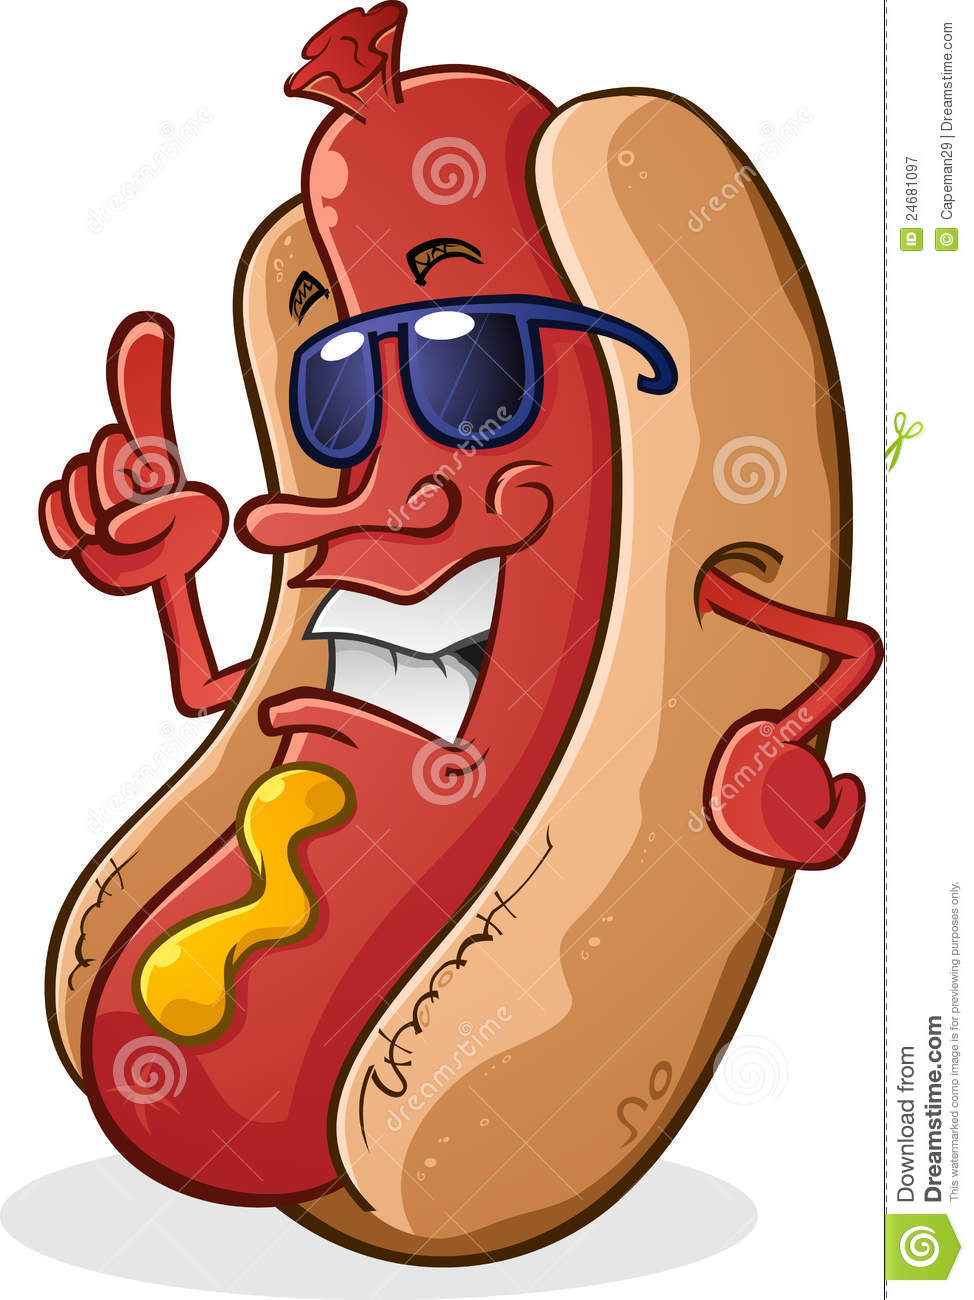 Hotdog clipart super dog transparent library Hot Dog Character With Attitude Royalty Free Stock Photography ... transparent library